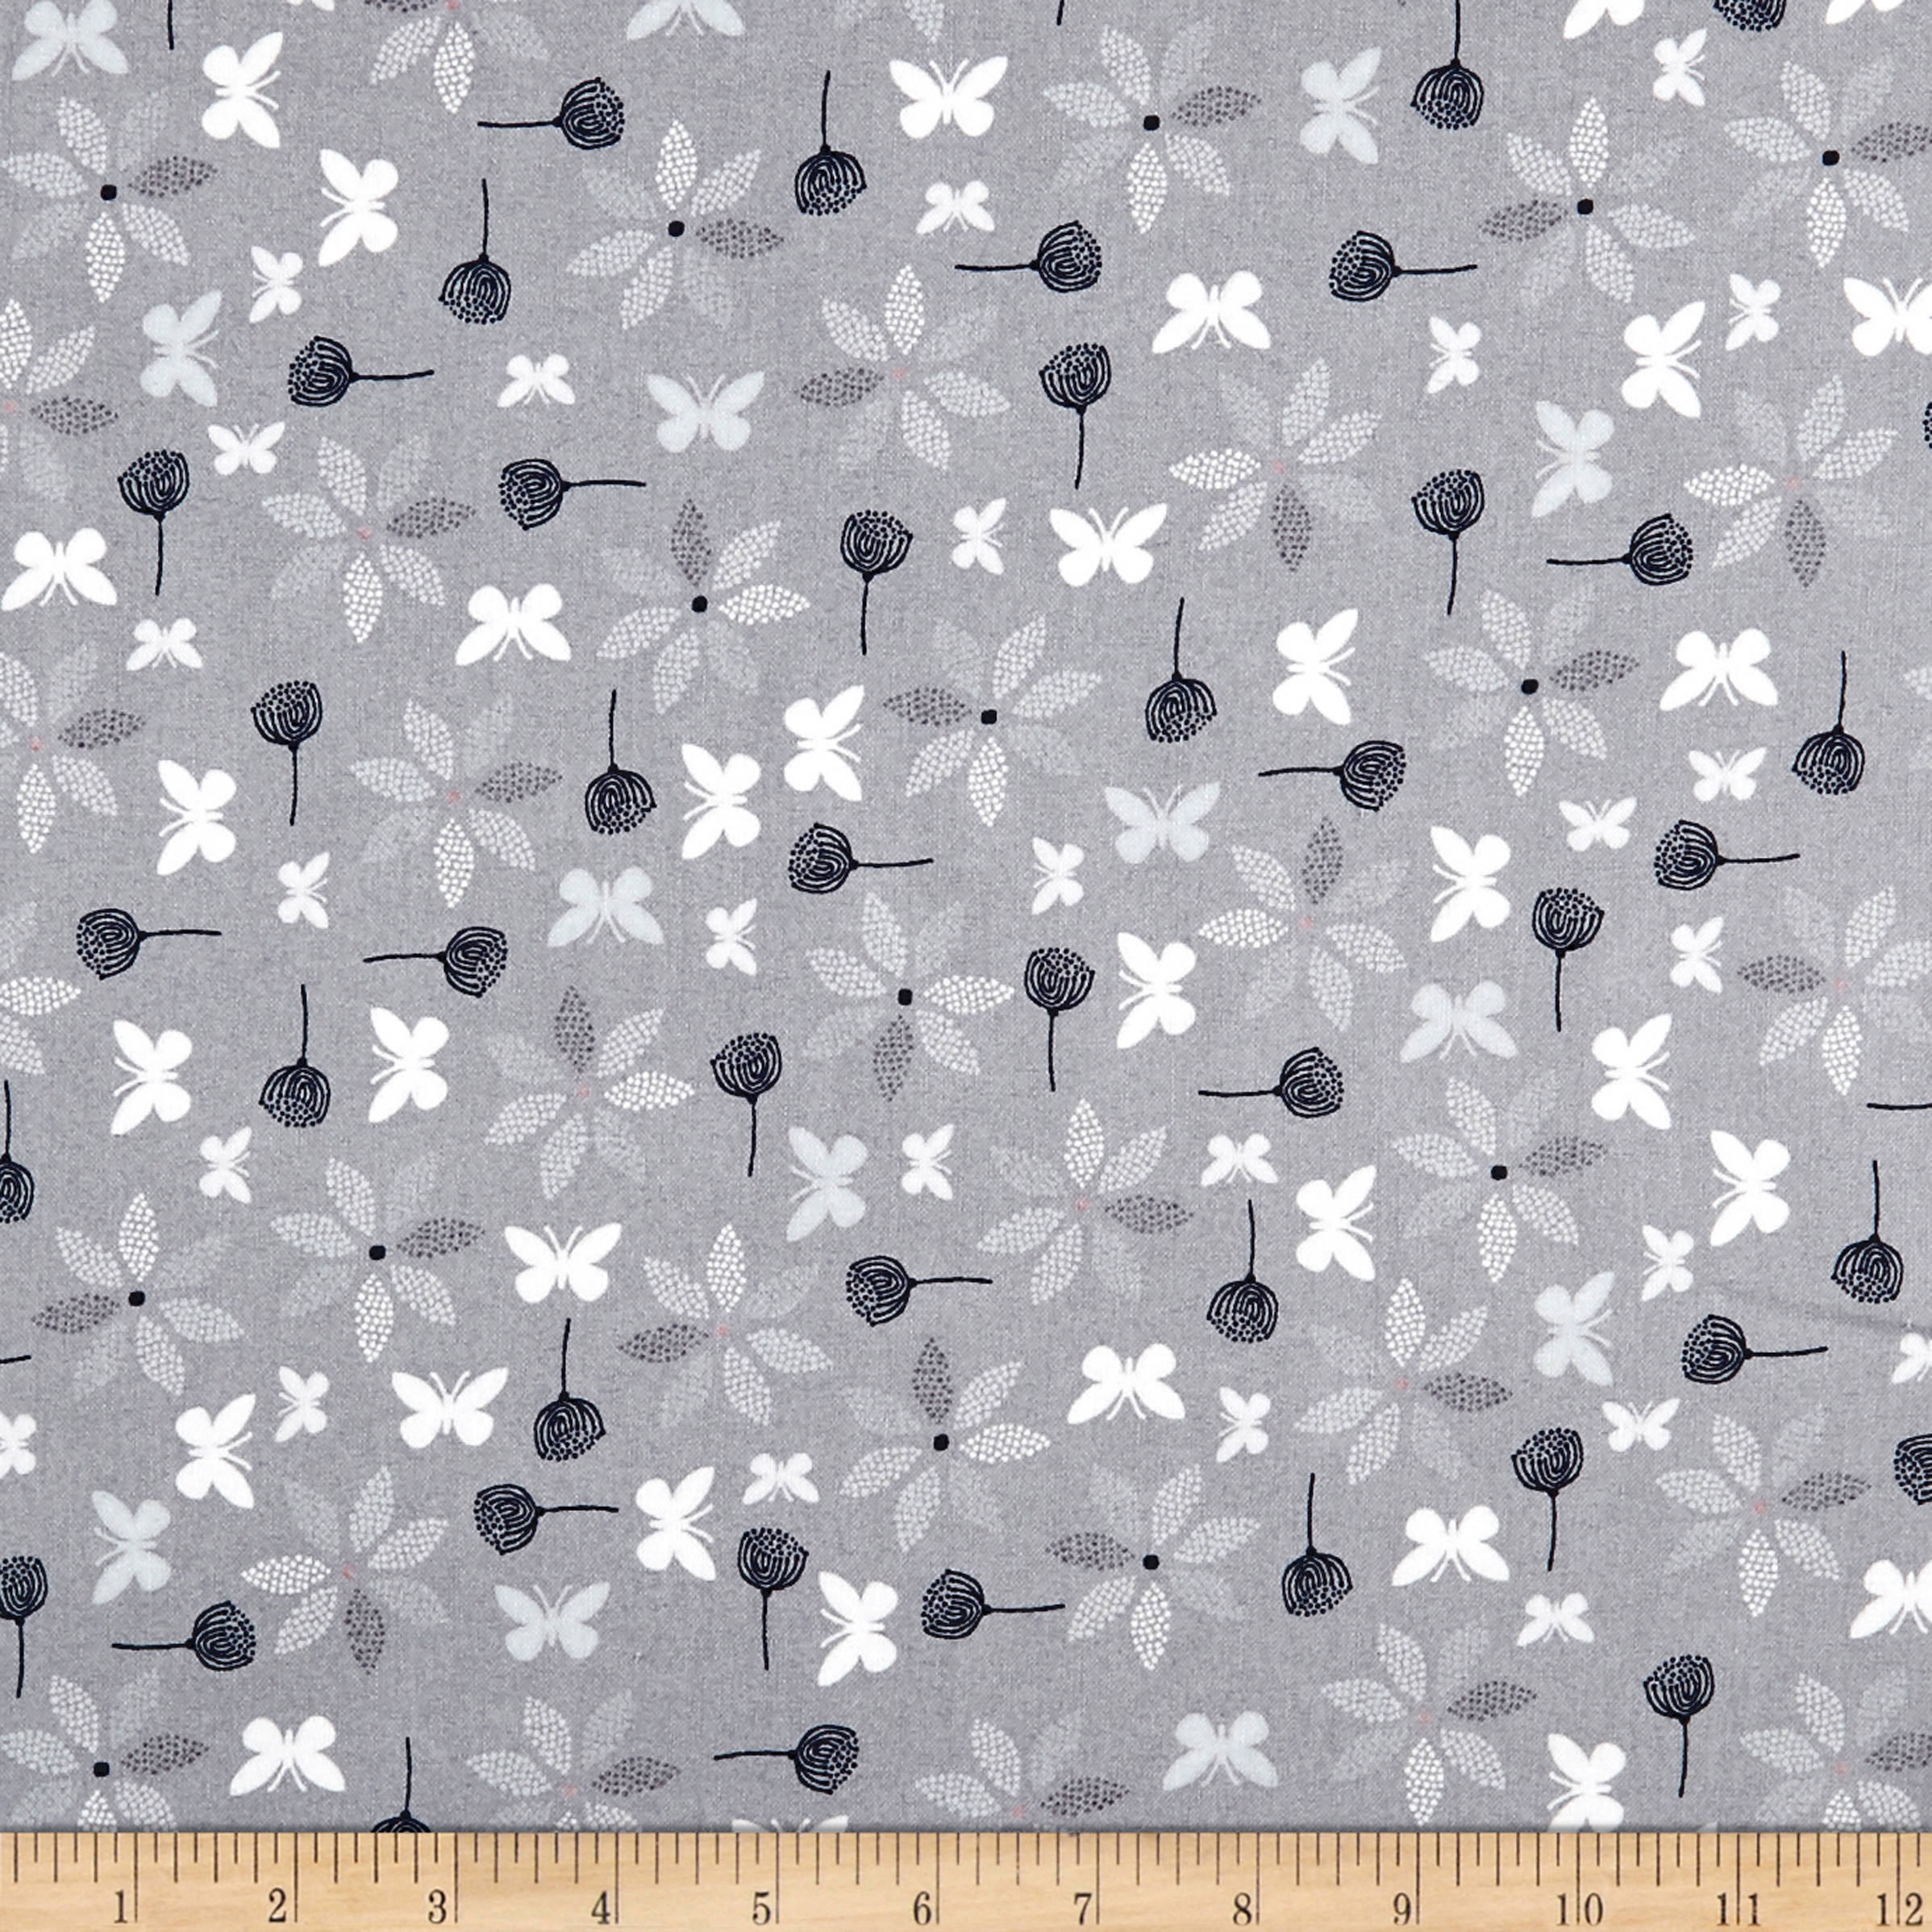 Stof Fabrics Denmark Hollie's Flowers Butterlies & Flowers Grey